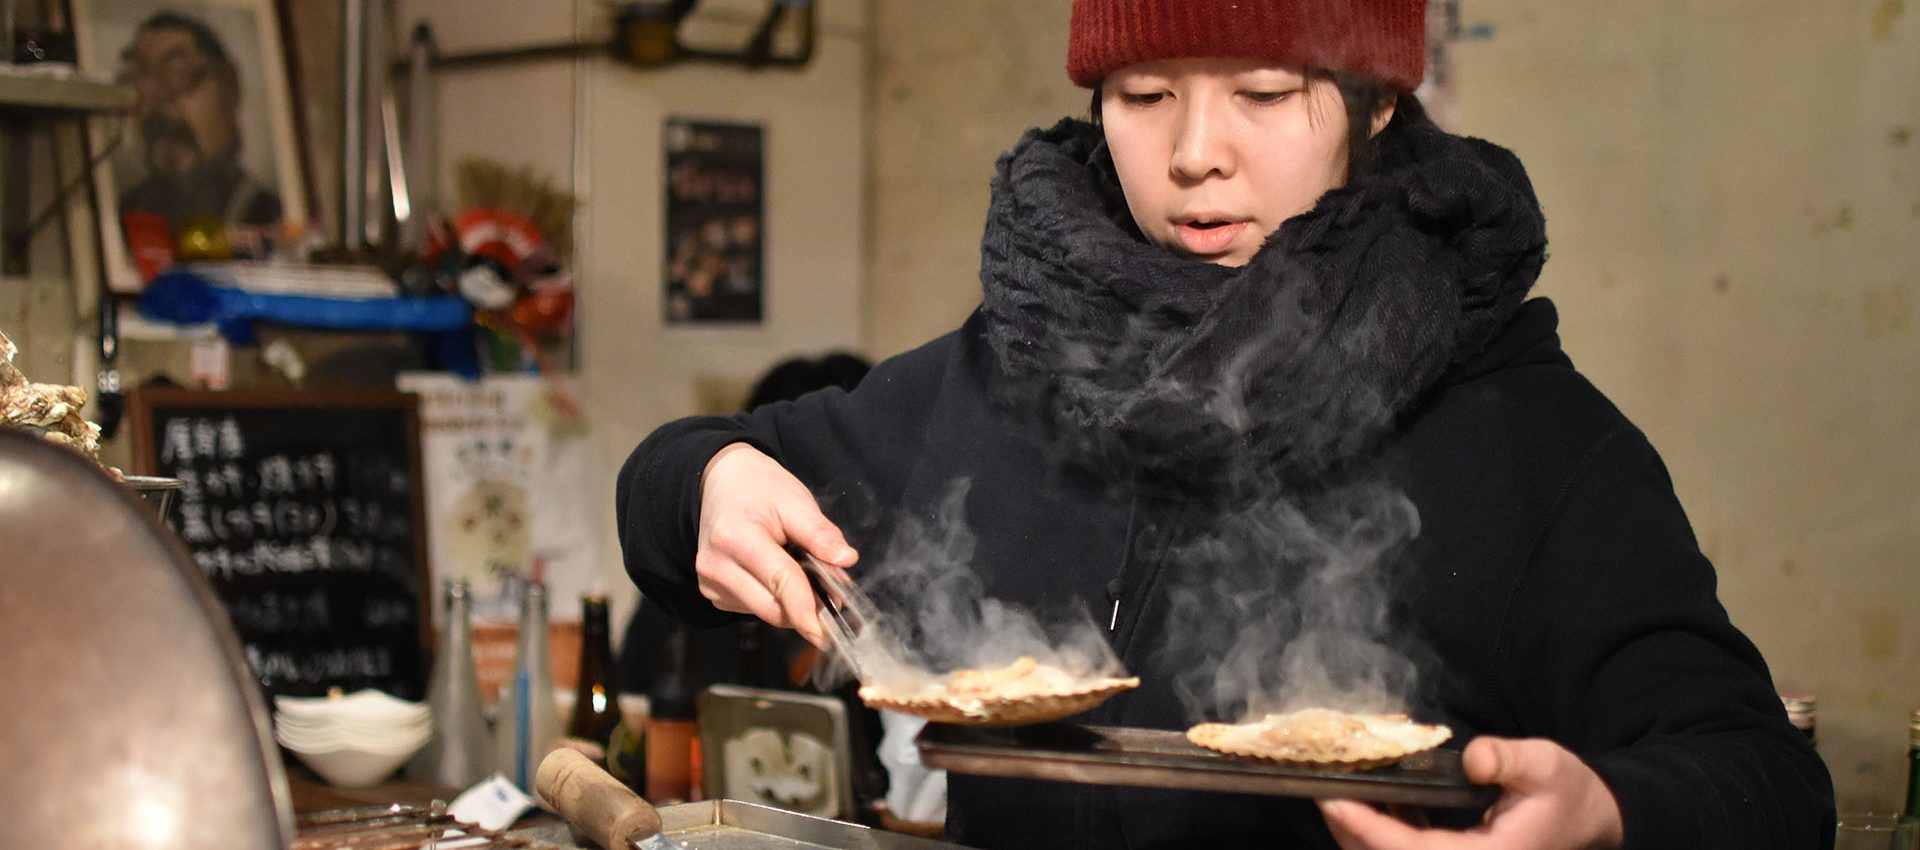 The local street food is amazing, have you ever tried Oysters on grill ?